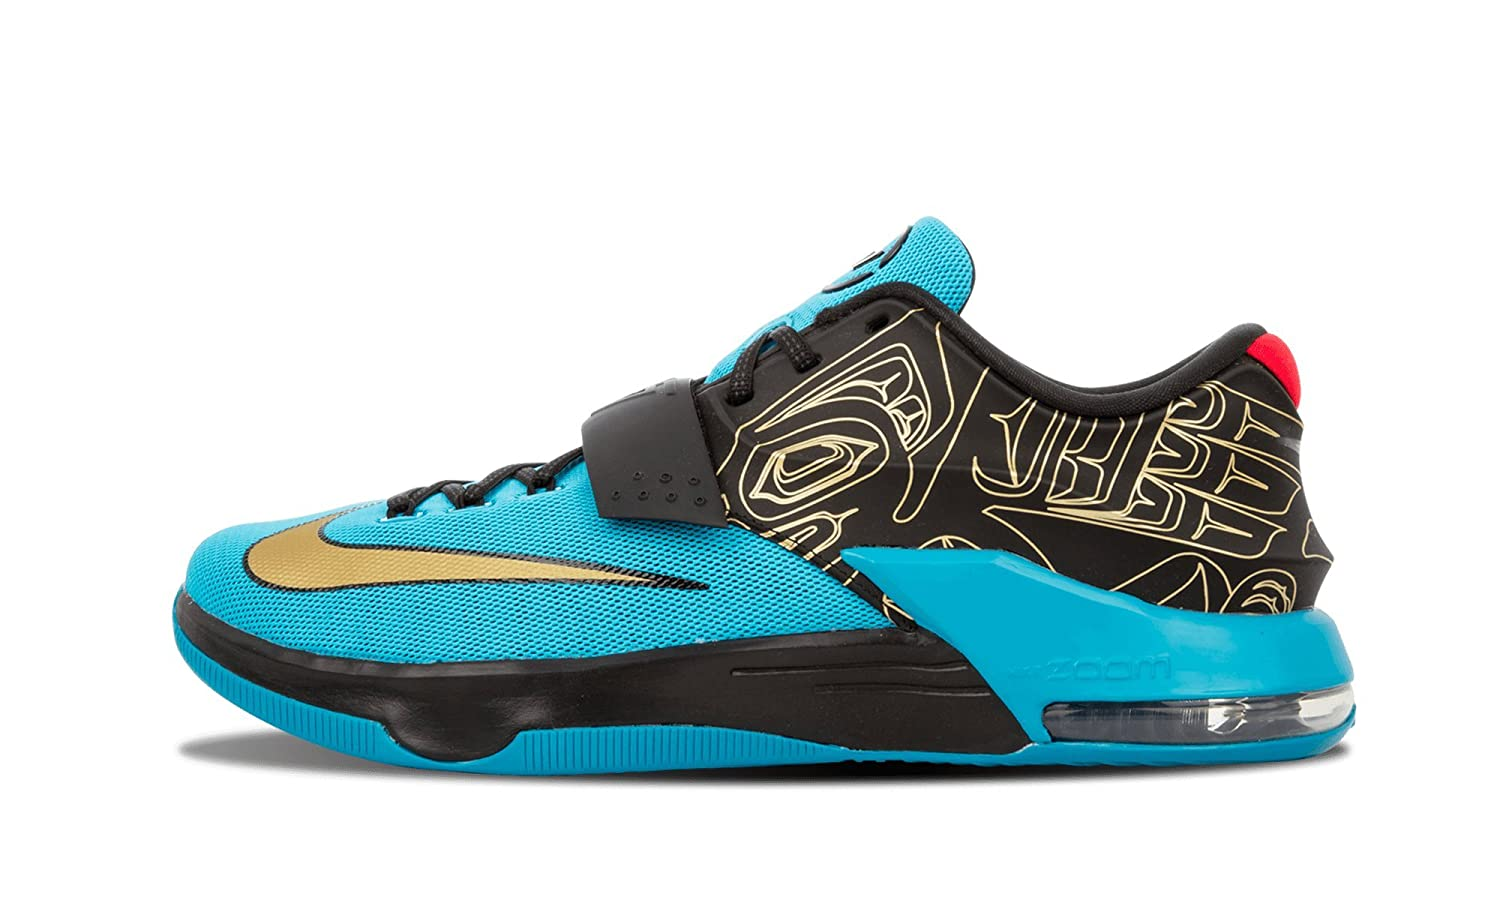 online store 05710 6cf24 Amazon.com  Nike KD VII N7 70135-486 (Size 12.5)  Shoes